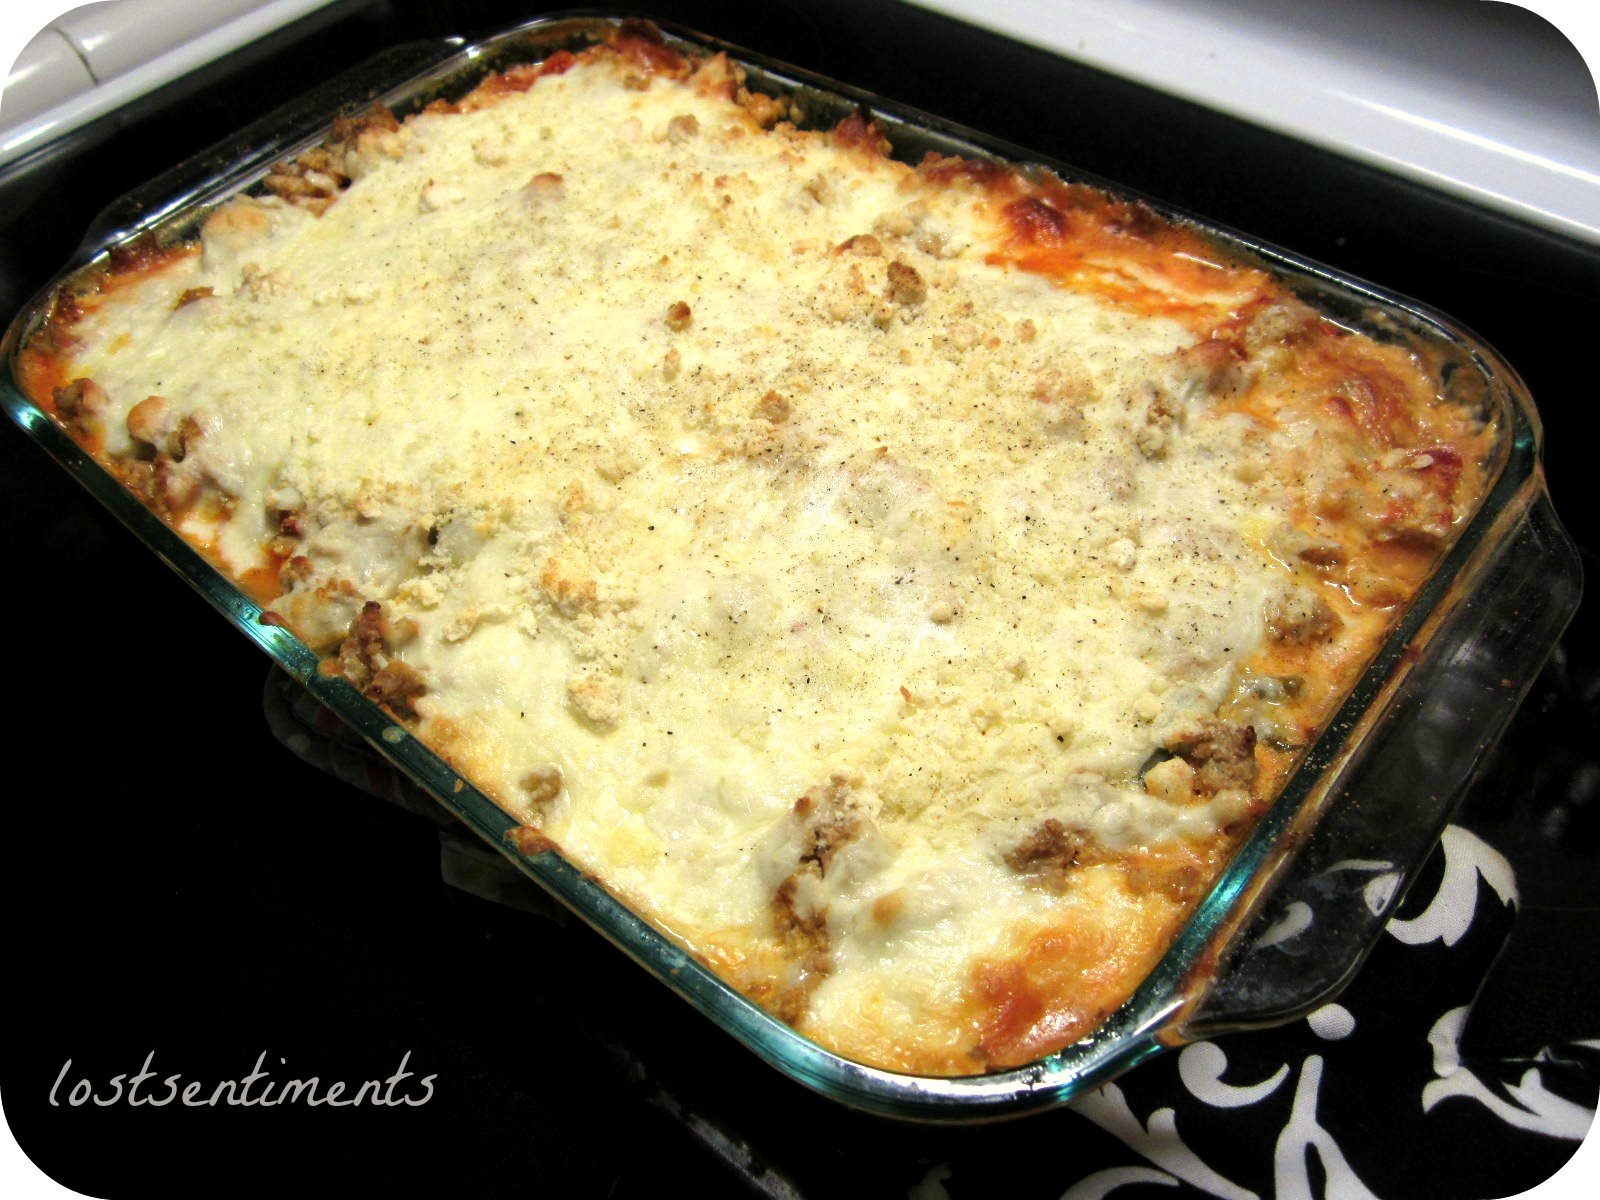 Low Carb Green Bean Casserole  lostsentiments Low Carb Green Bean Casserole with Chicken